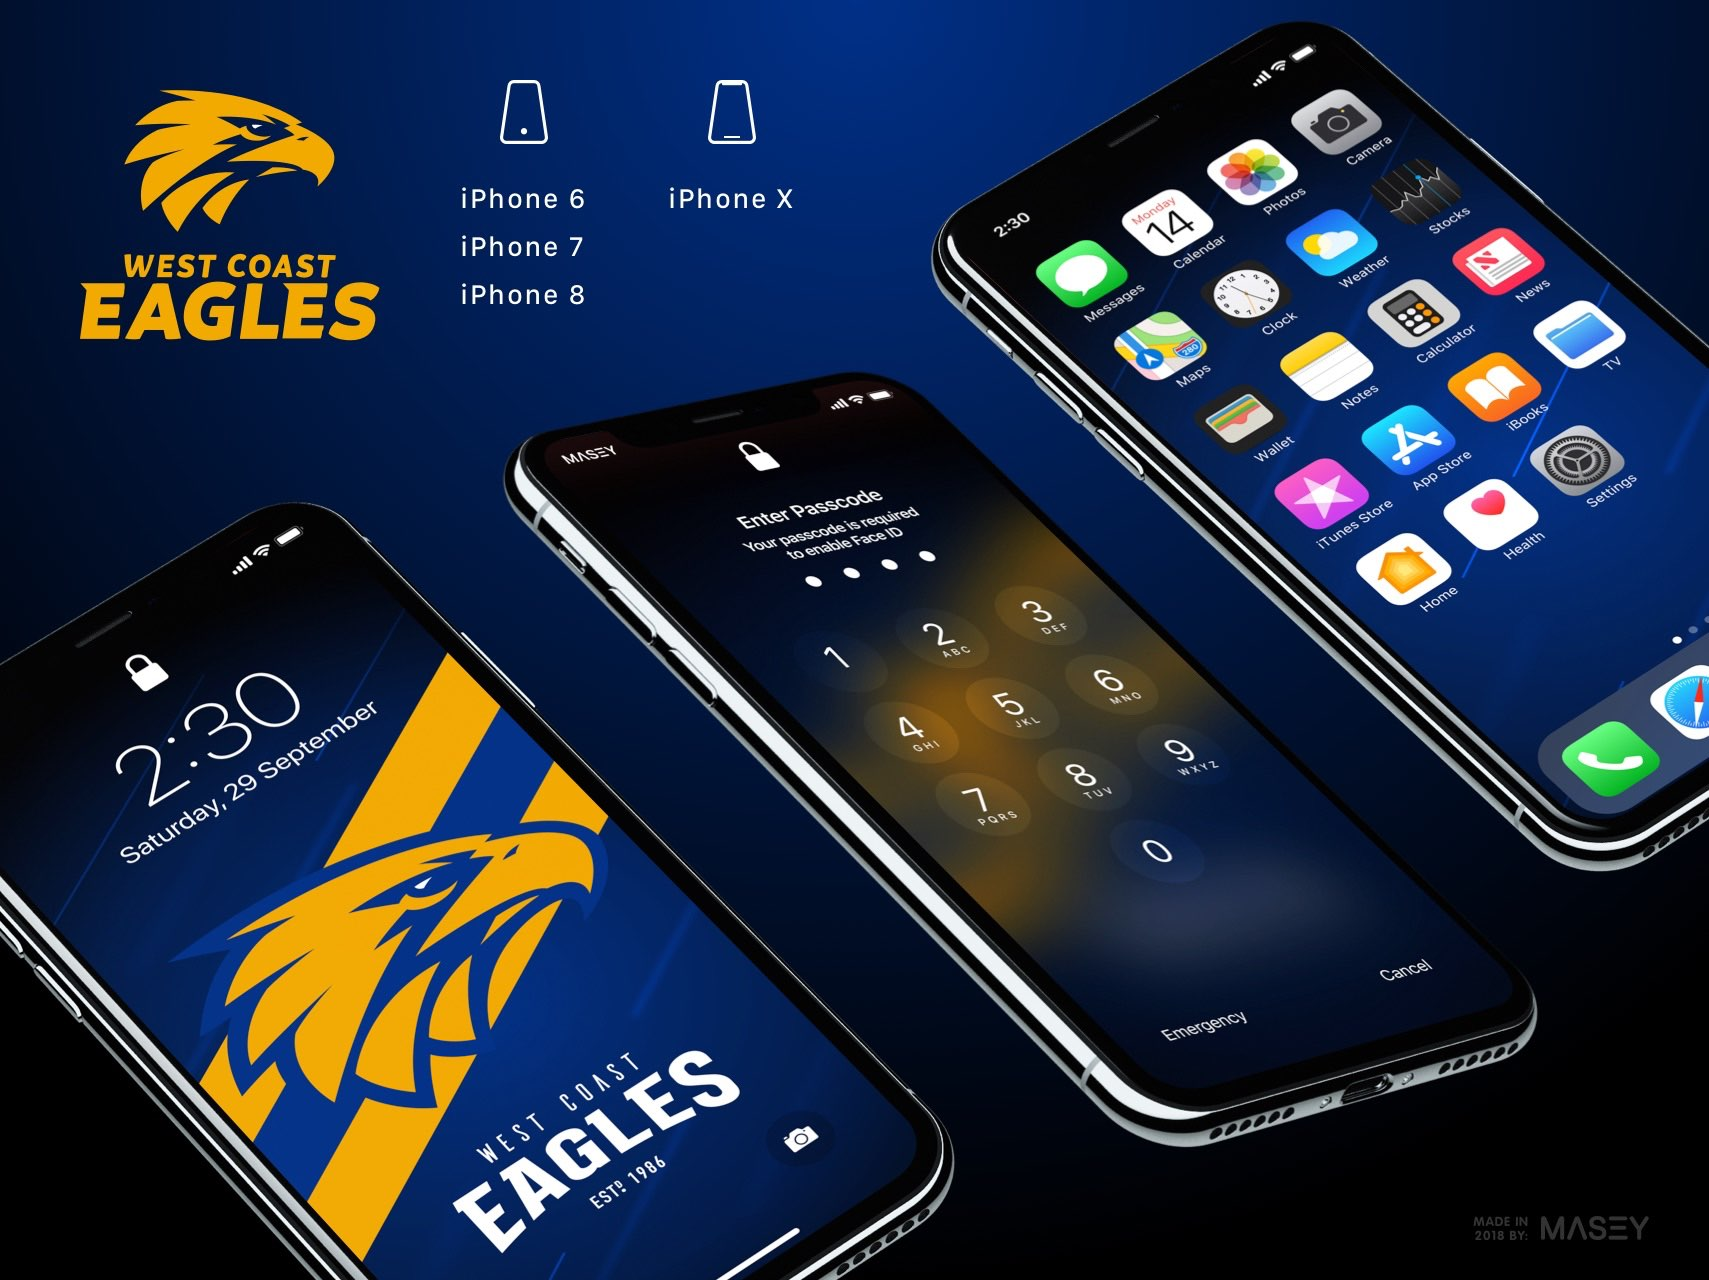 West Coast Eagles iPhone Wallpaper